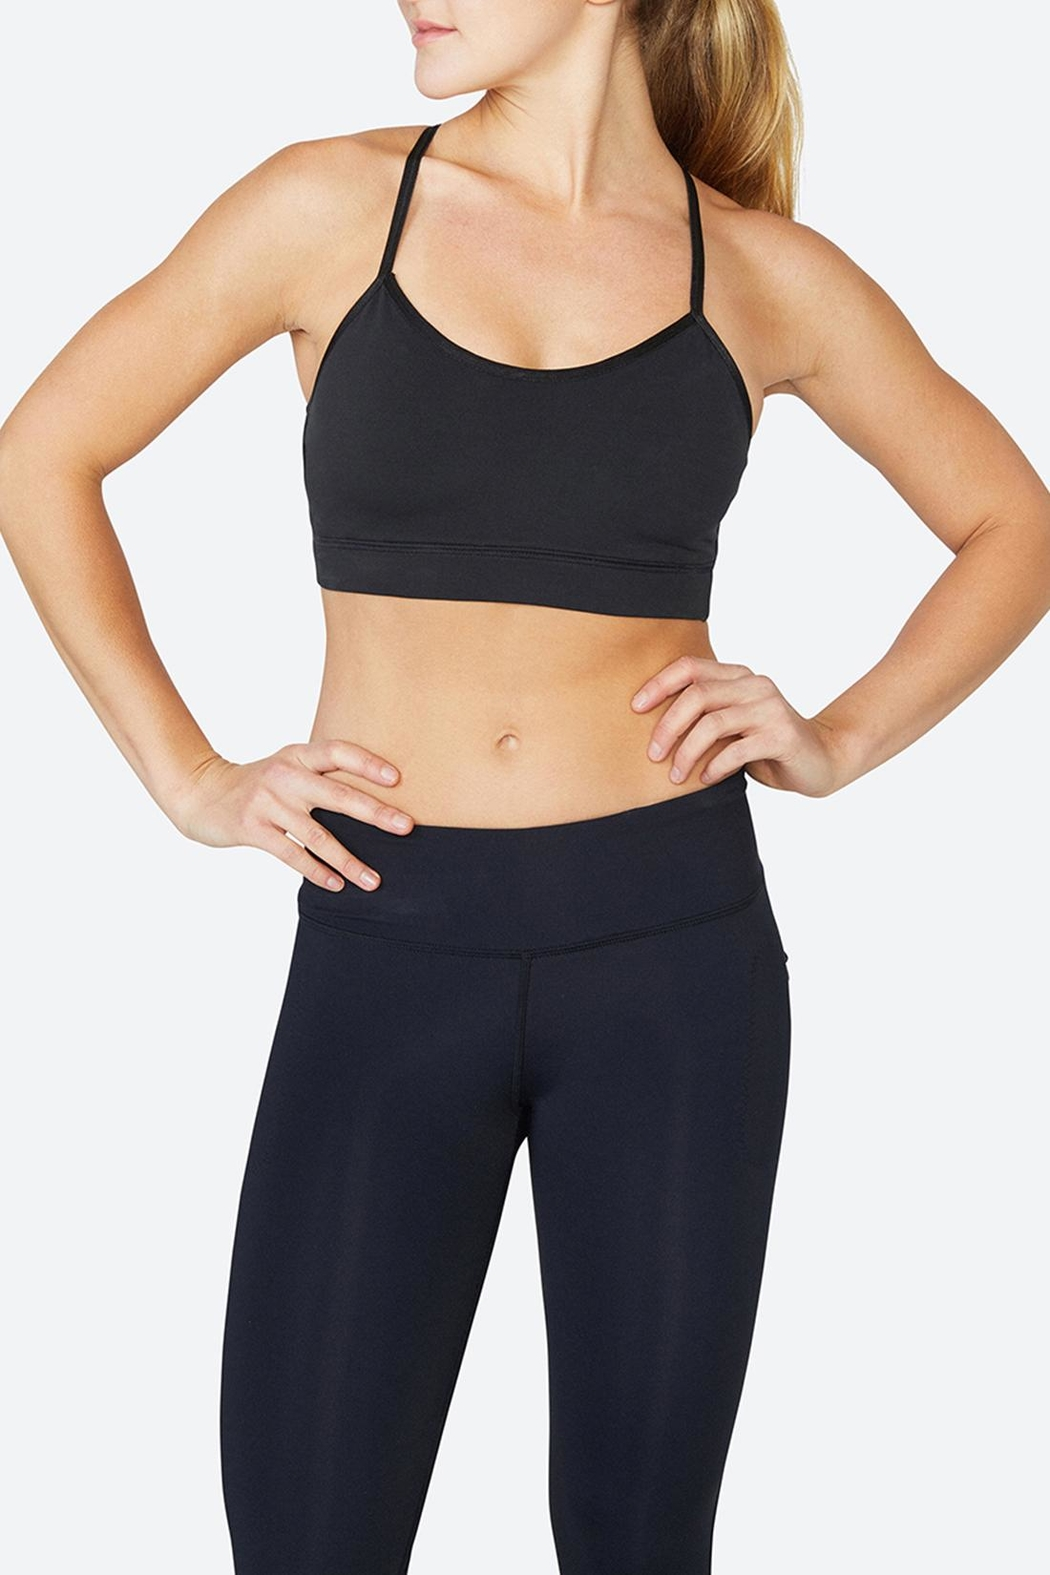 Solfire Circuit Black Sports Bra - Main Image